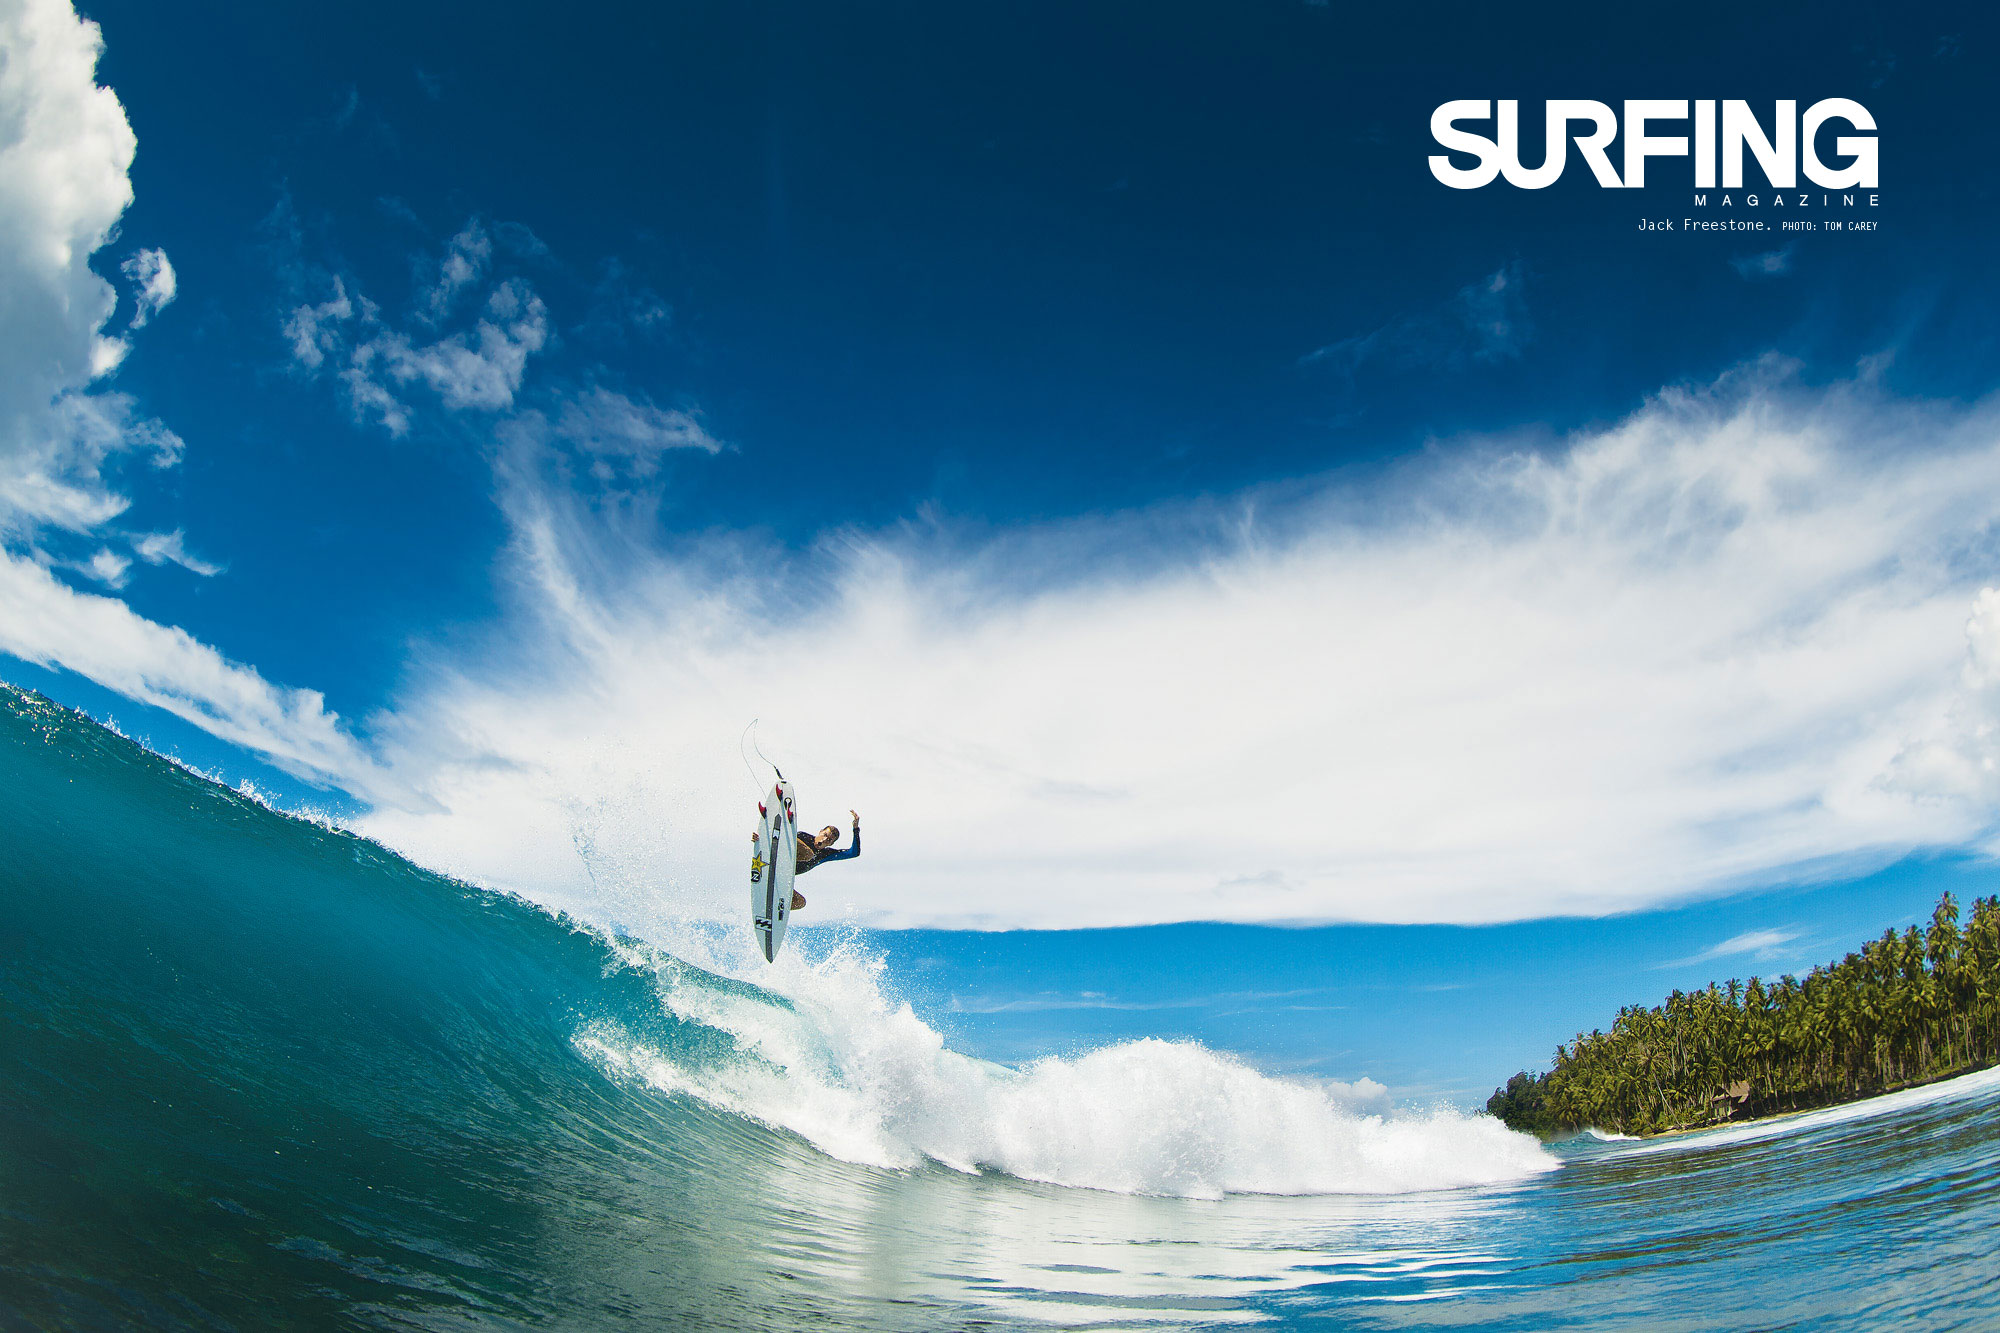 Widescreen Wallpapers Surfing 2000x1333 Px V51